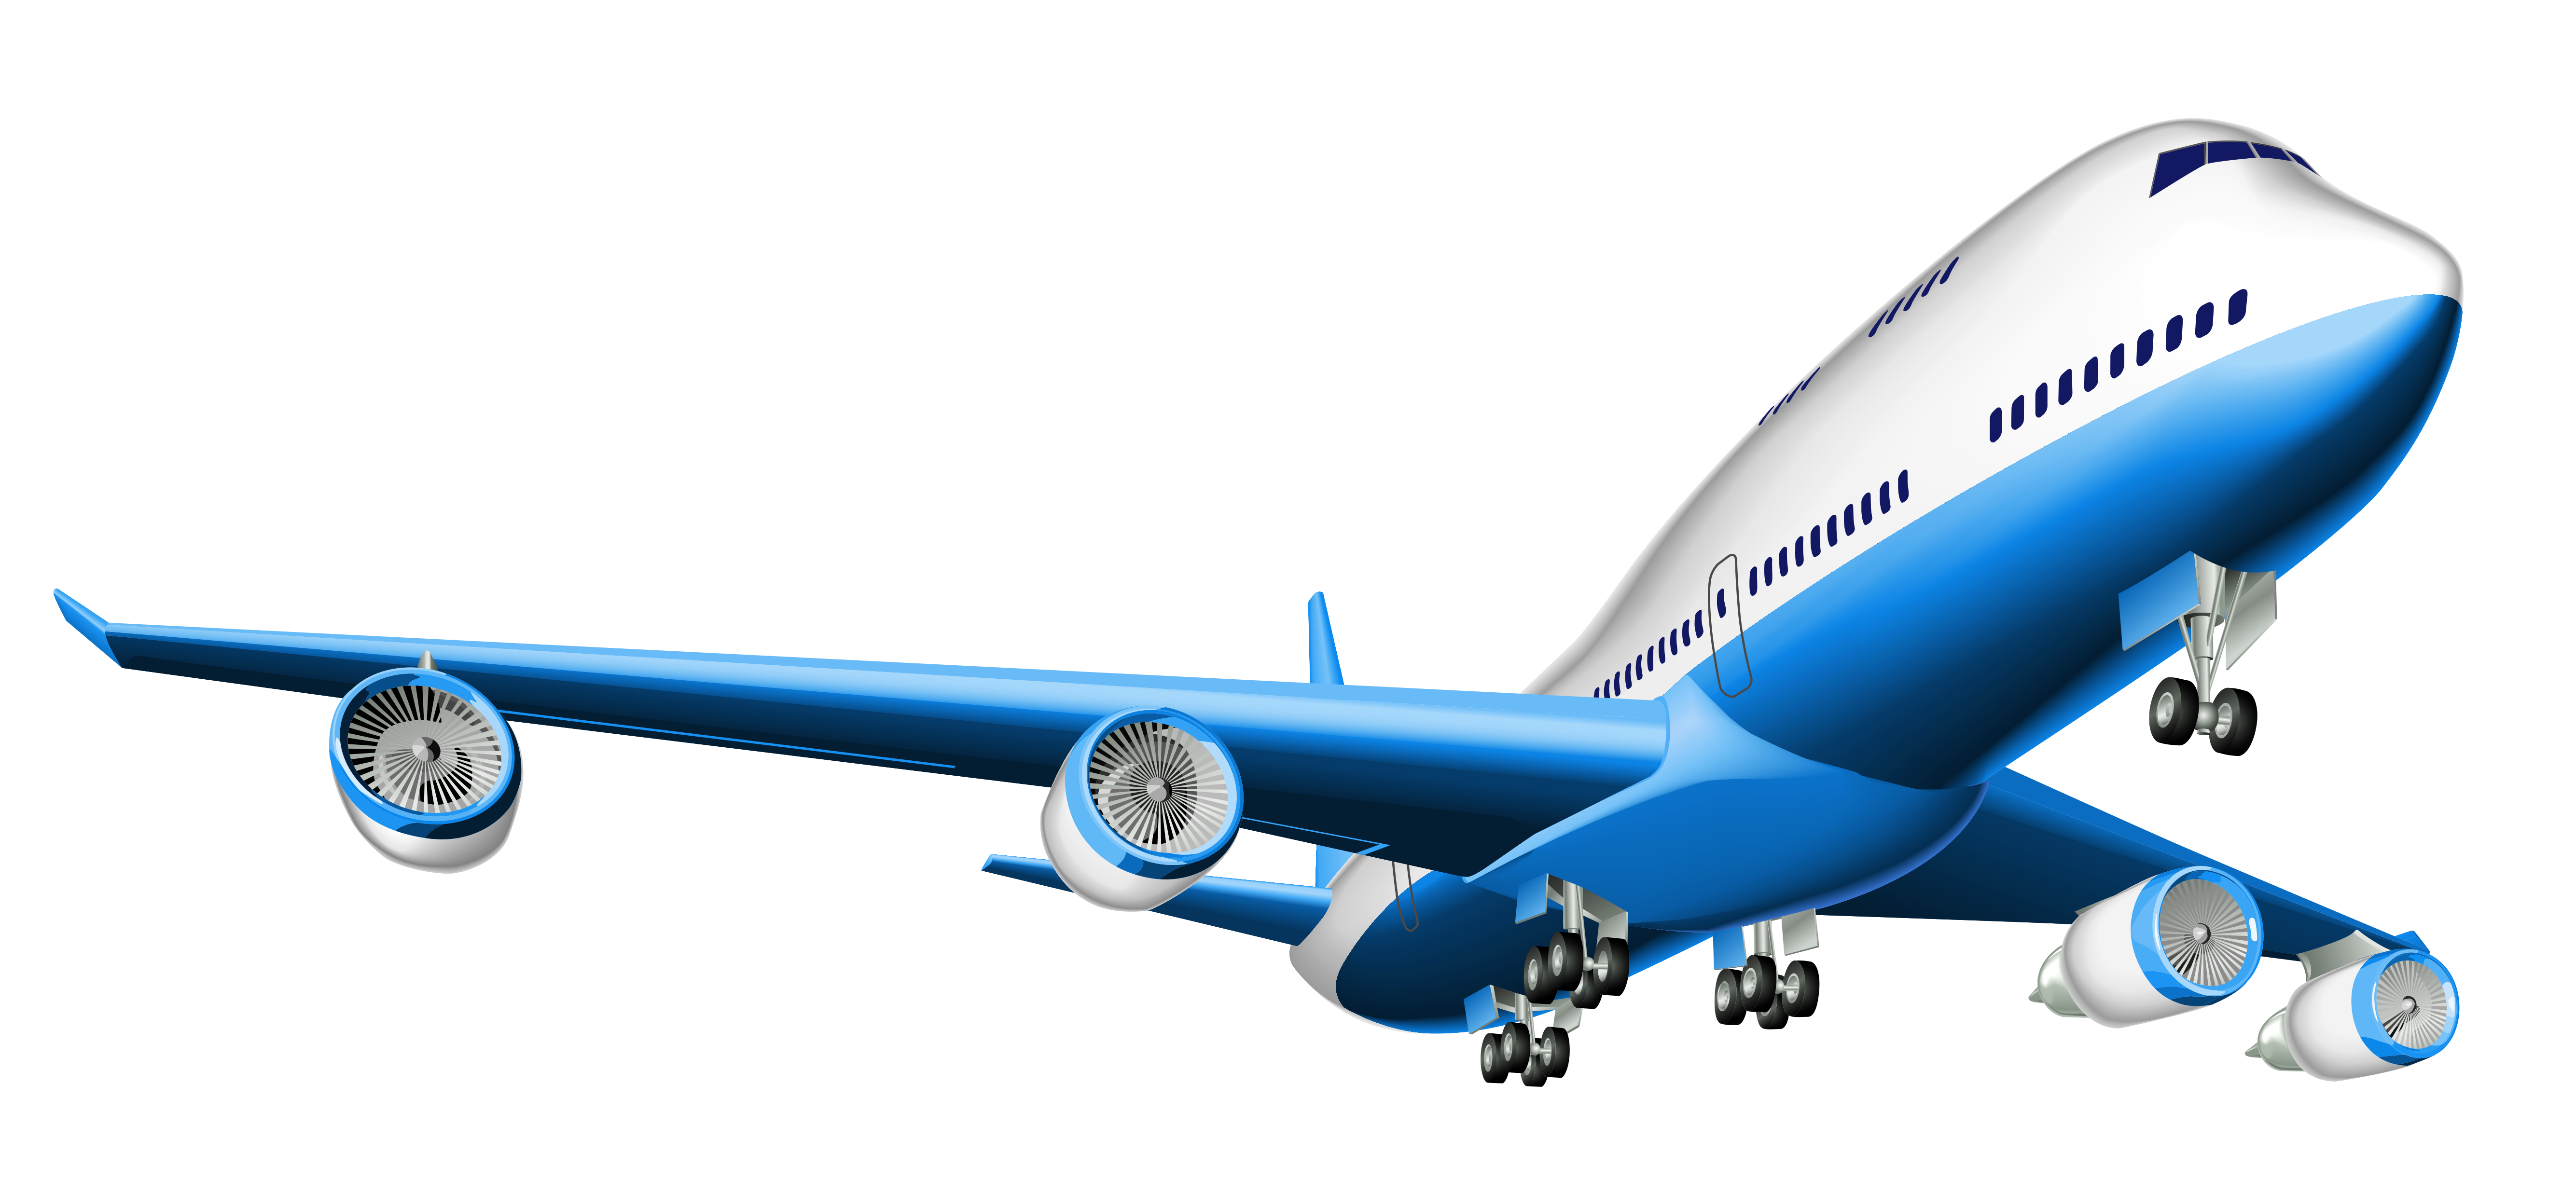 collection of airline. Clipart plane jetliner